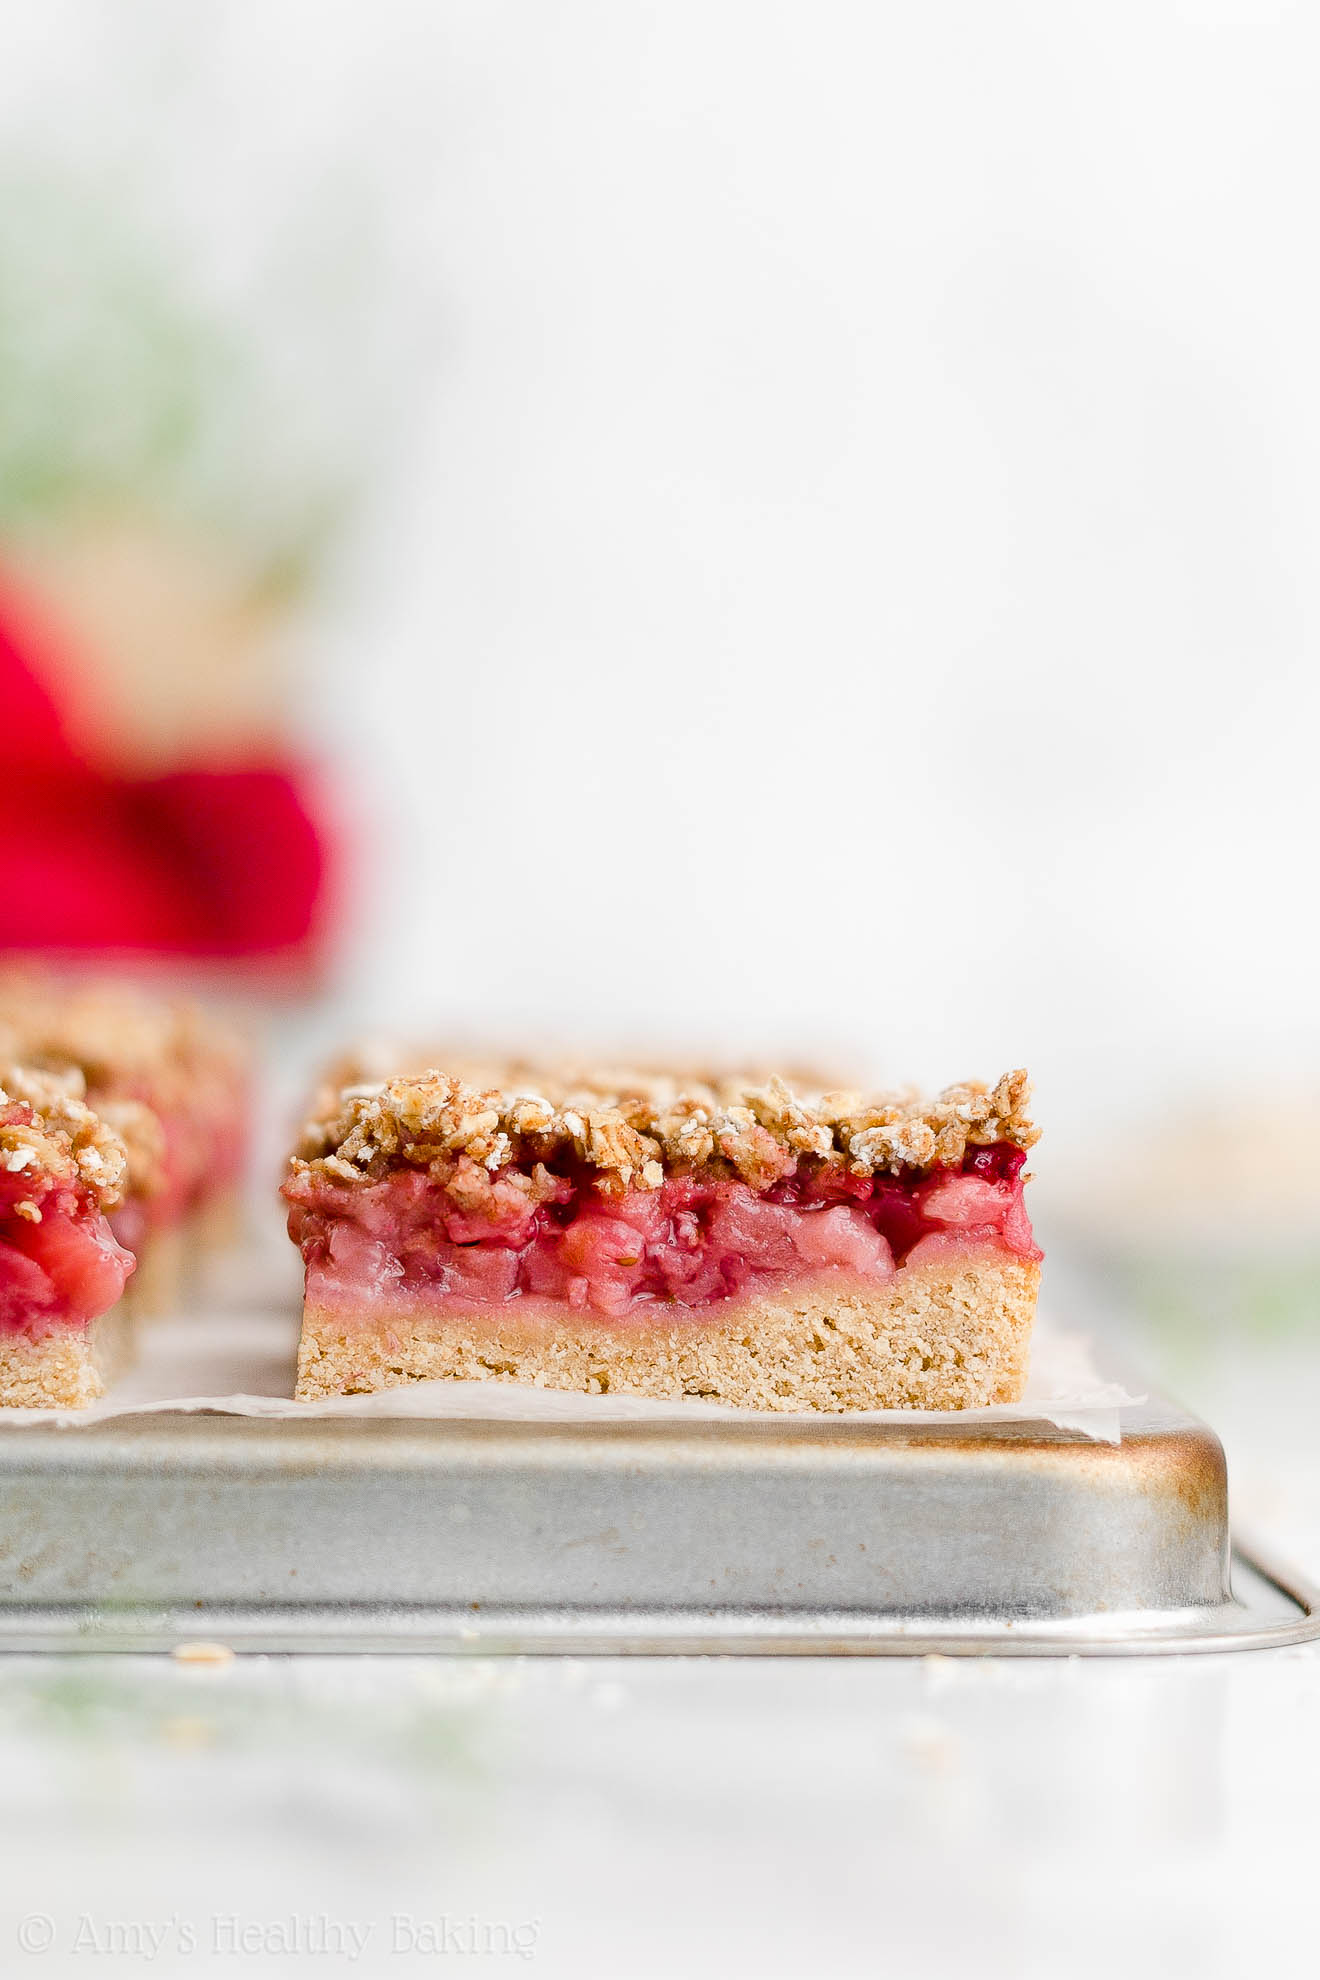 Best Easy Healthy Gluten Free Vegan Fresh Strawberry Oatmeal Crumble Bars